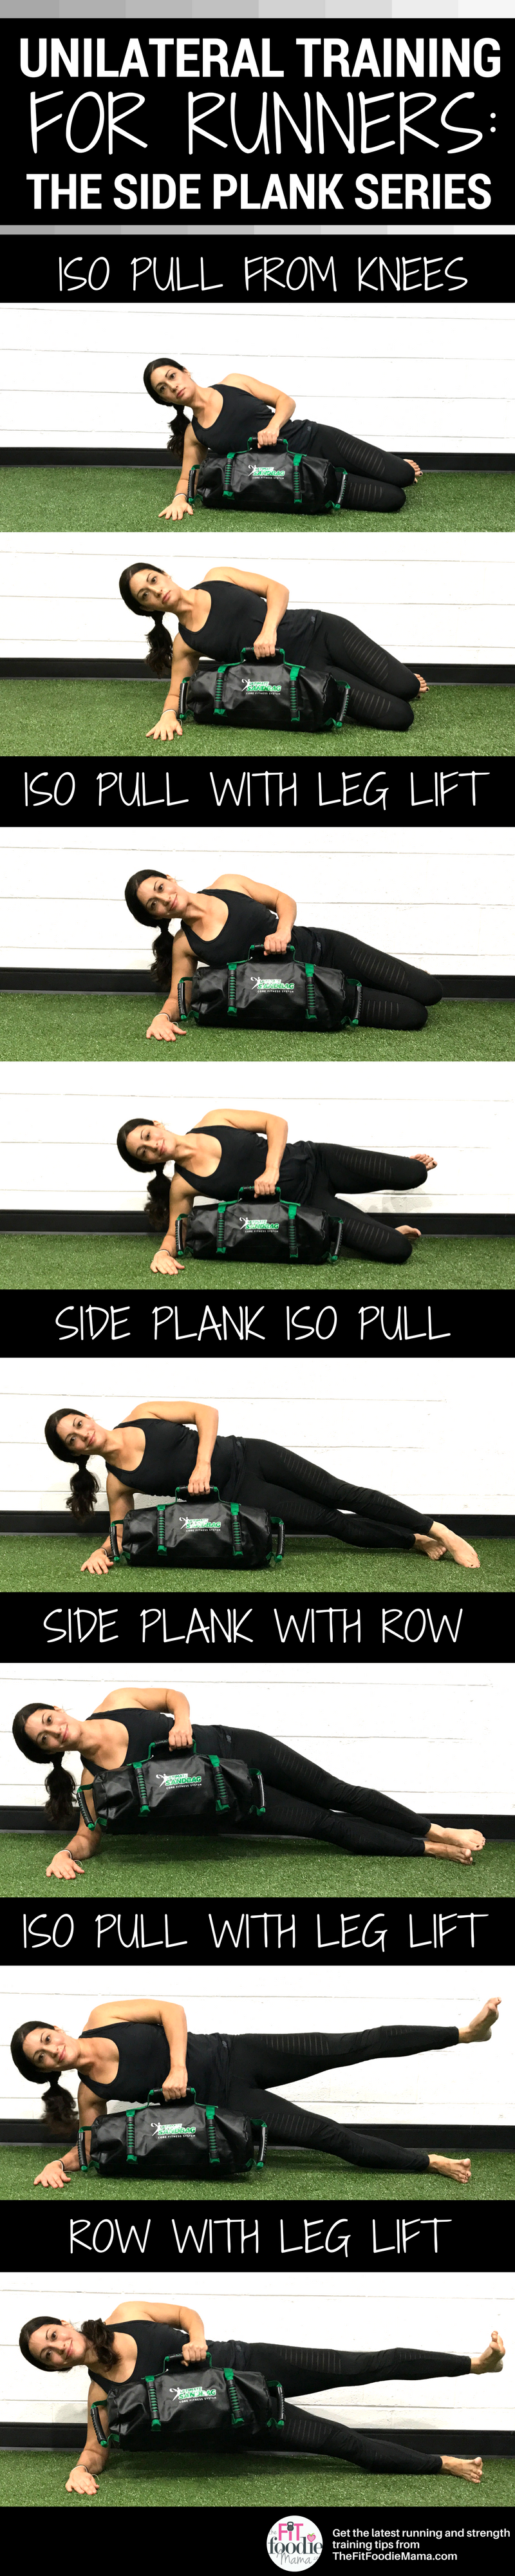 Unilateral Training from the Ground Up for Runners: Progressing the Side Plank Series